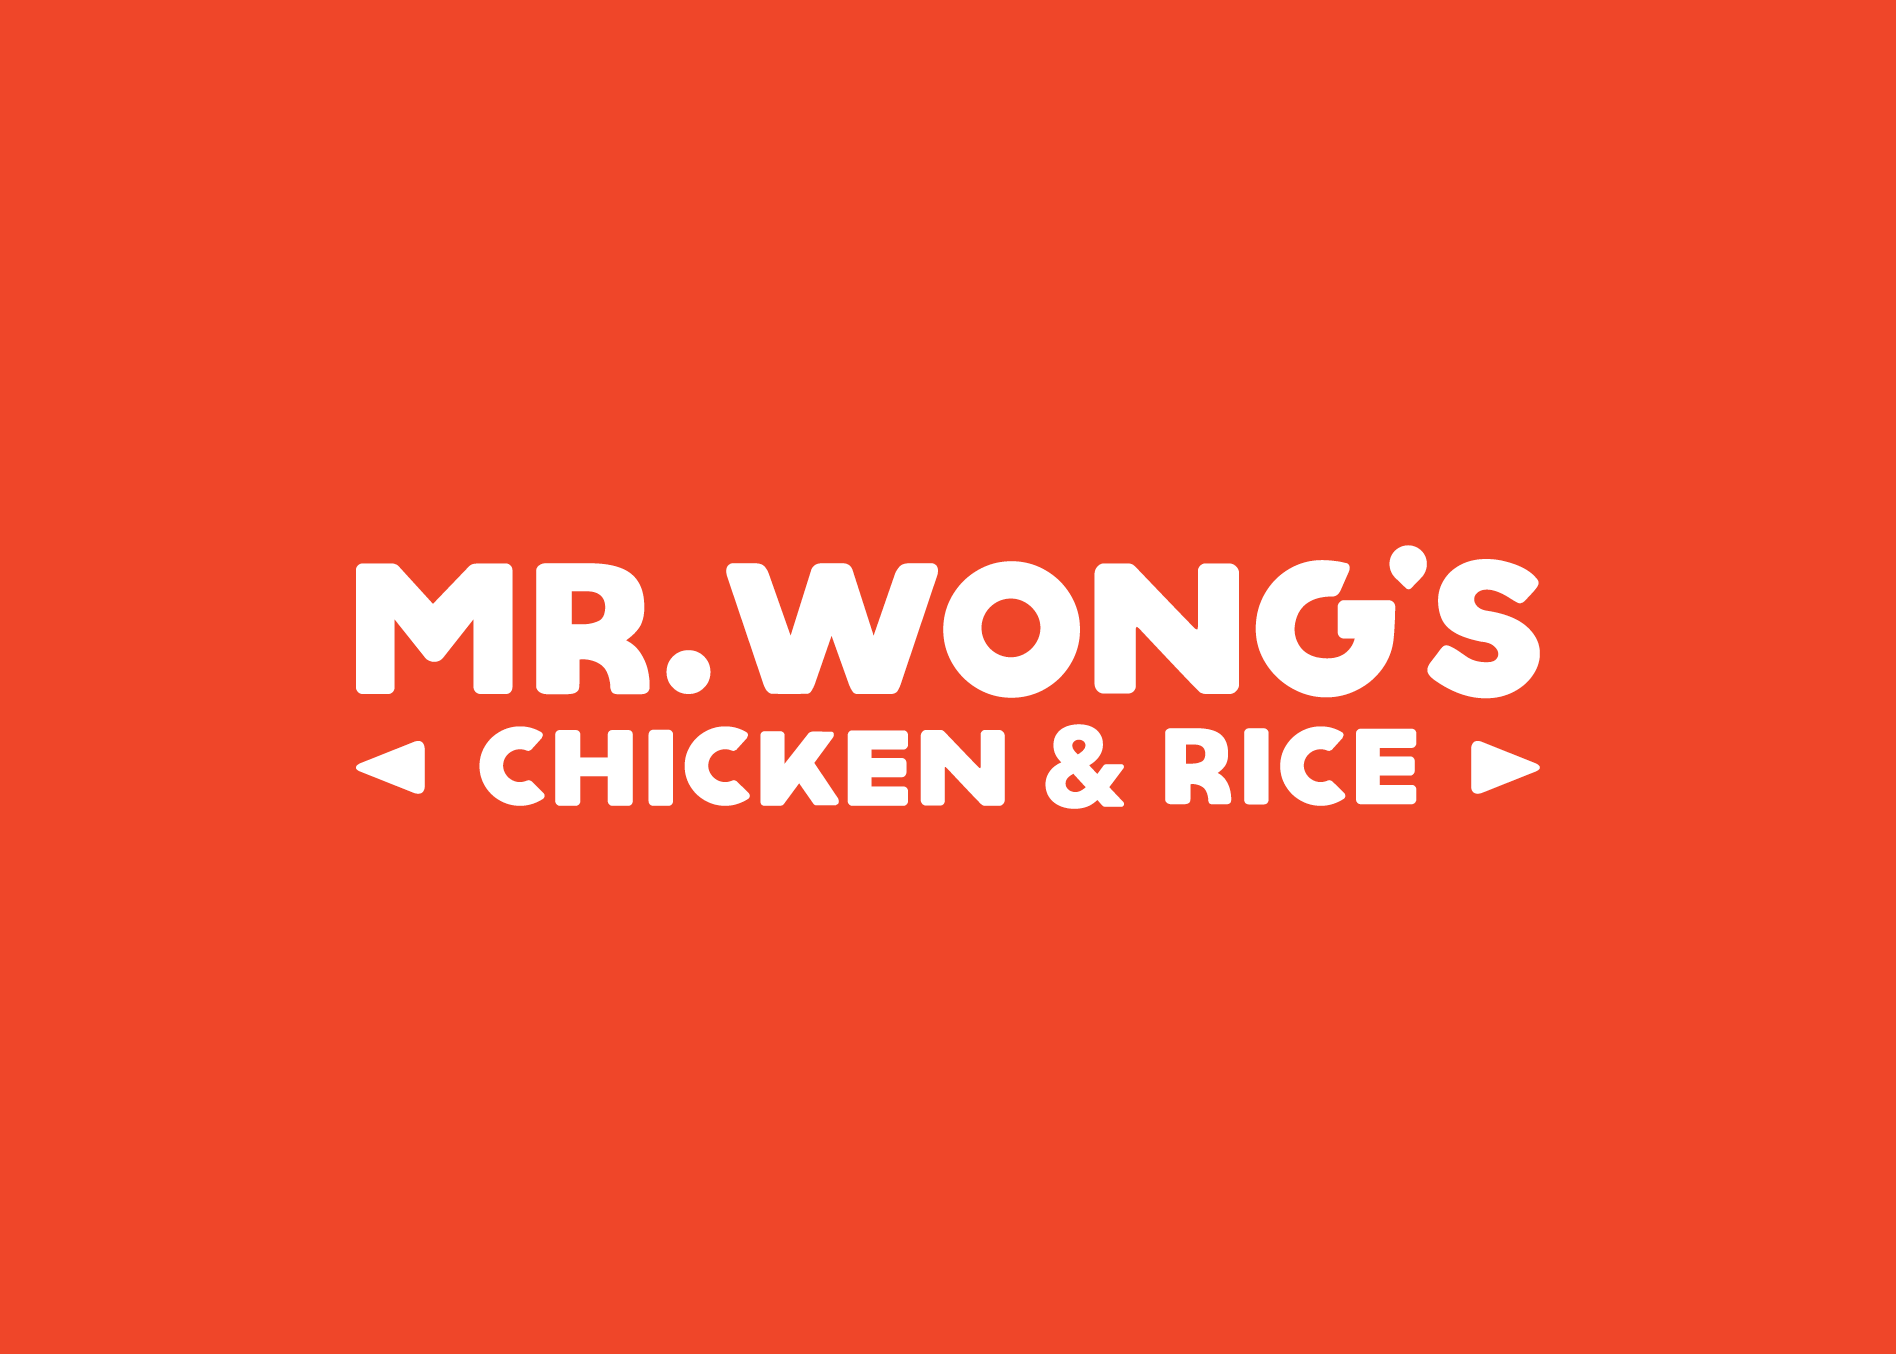 chicken restaurant logo graphic design